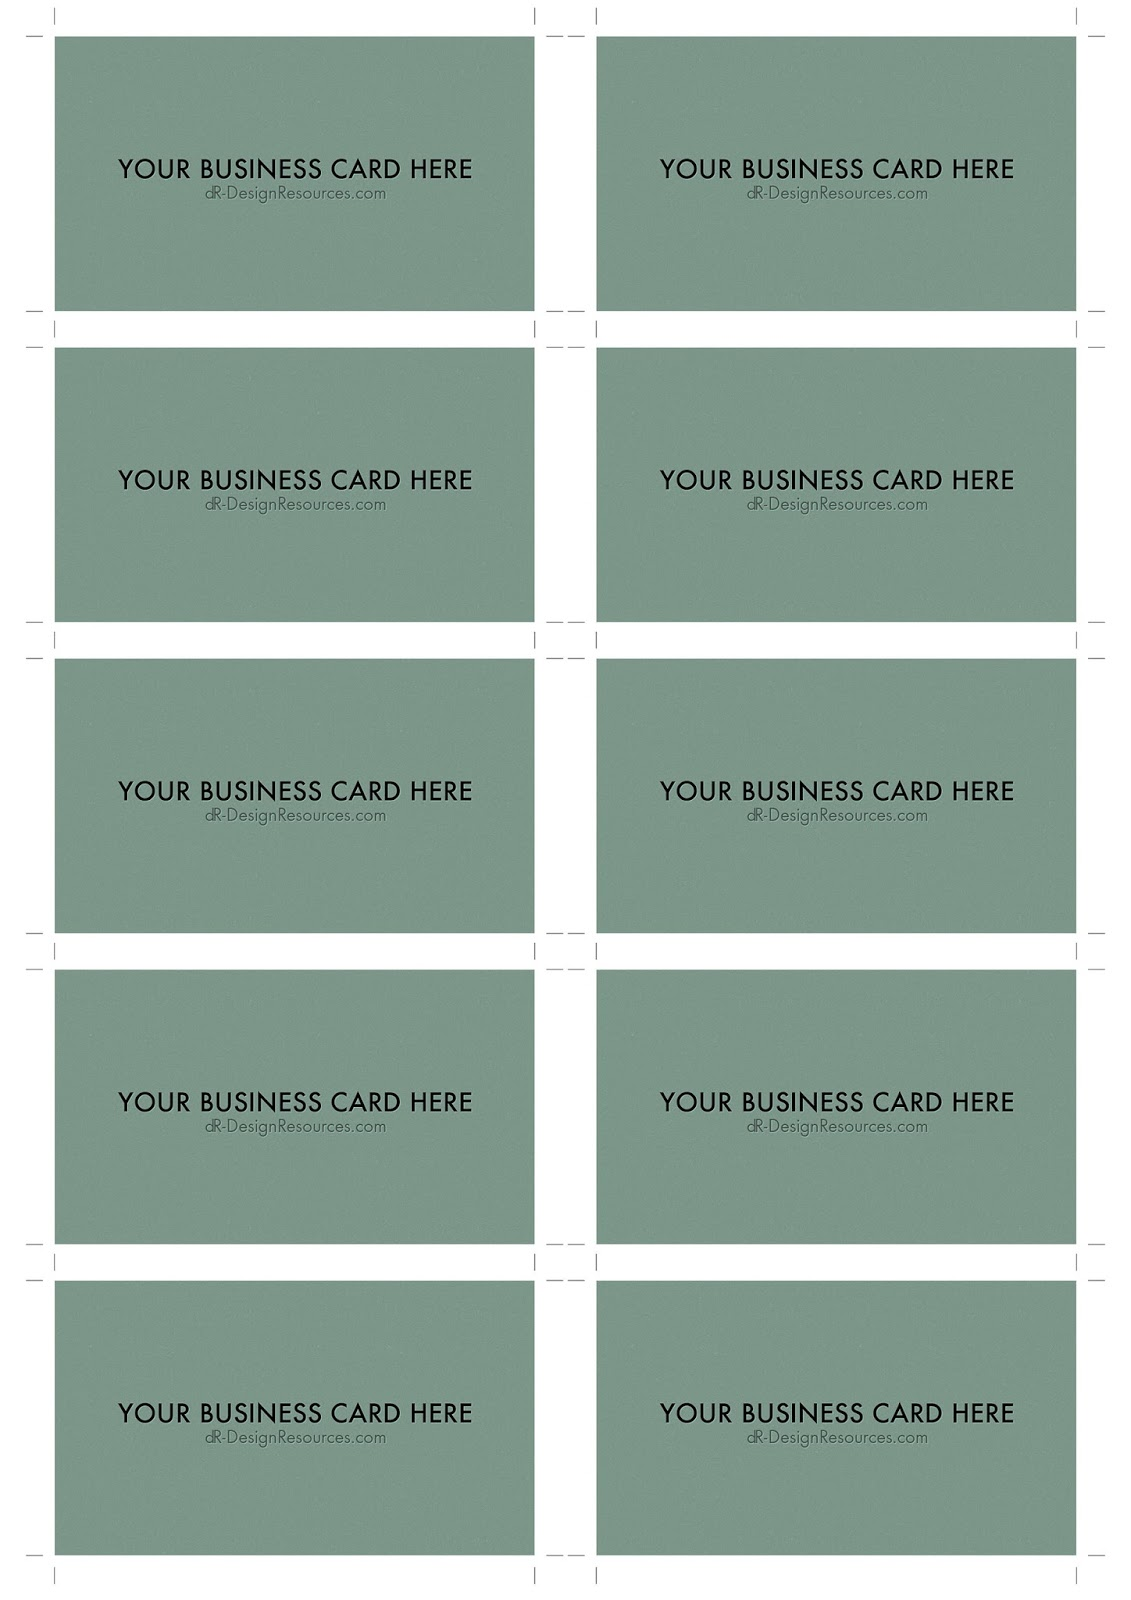 10 business card template business card design for Template for business card